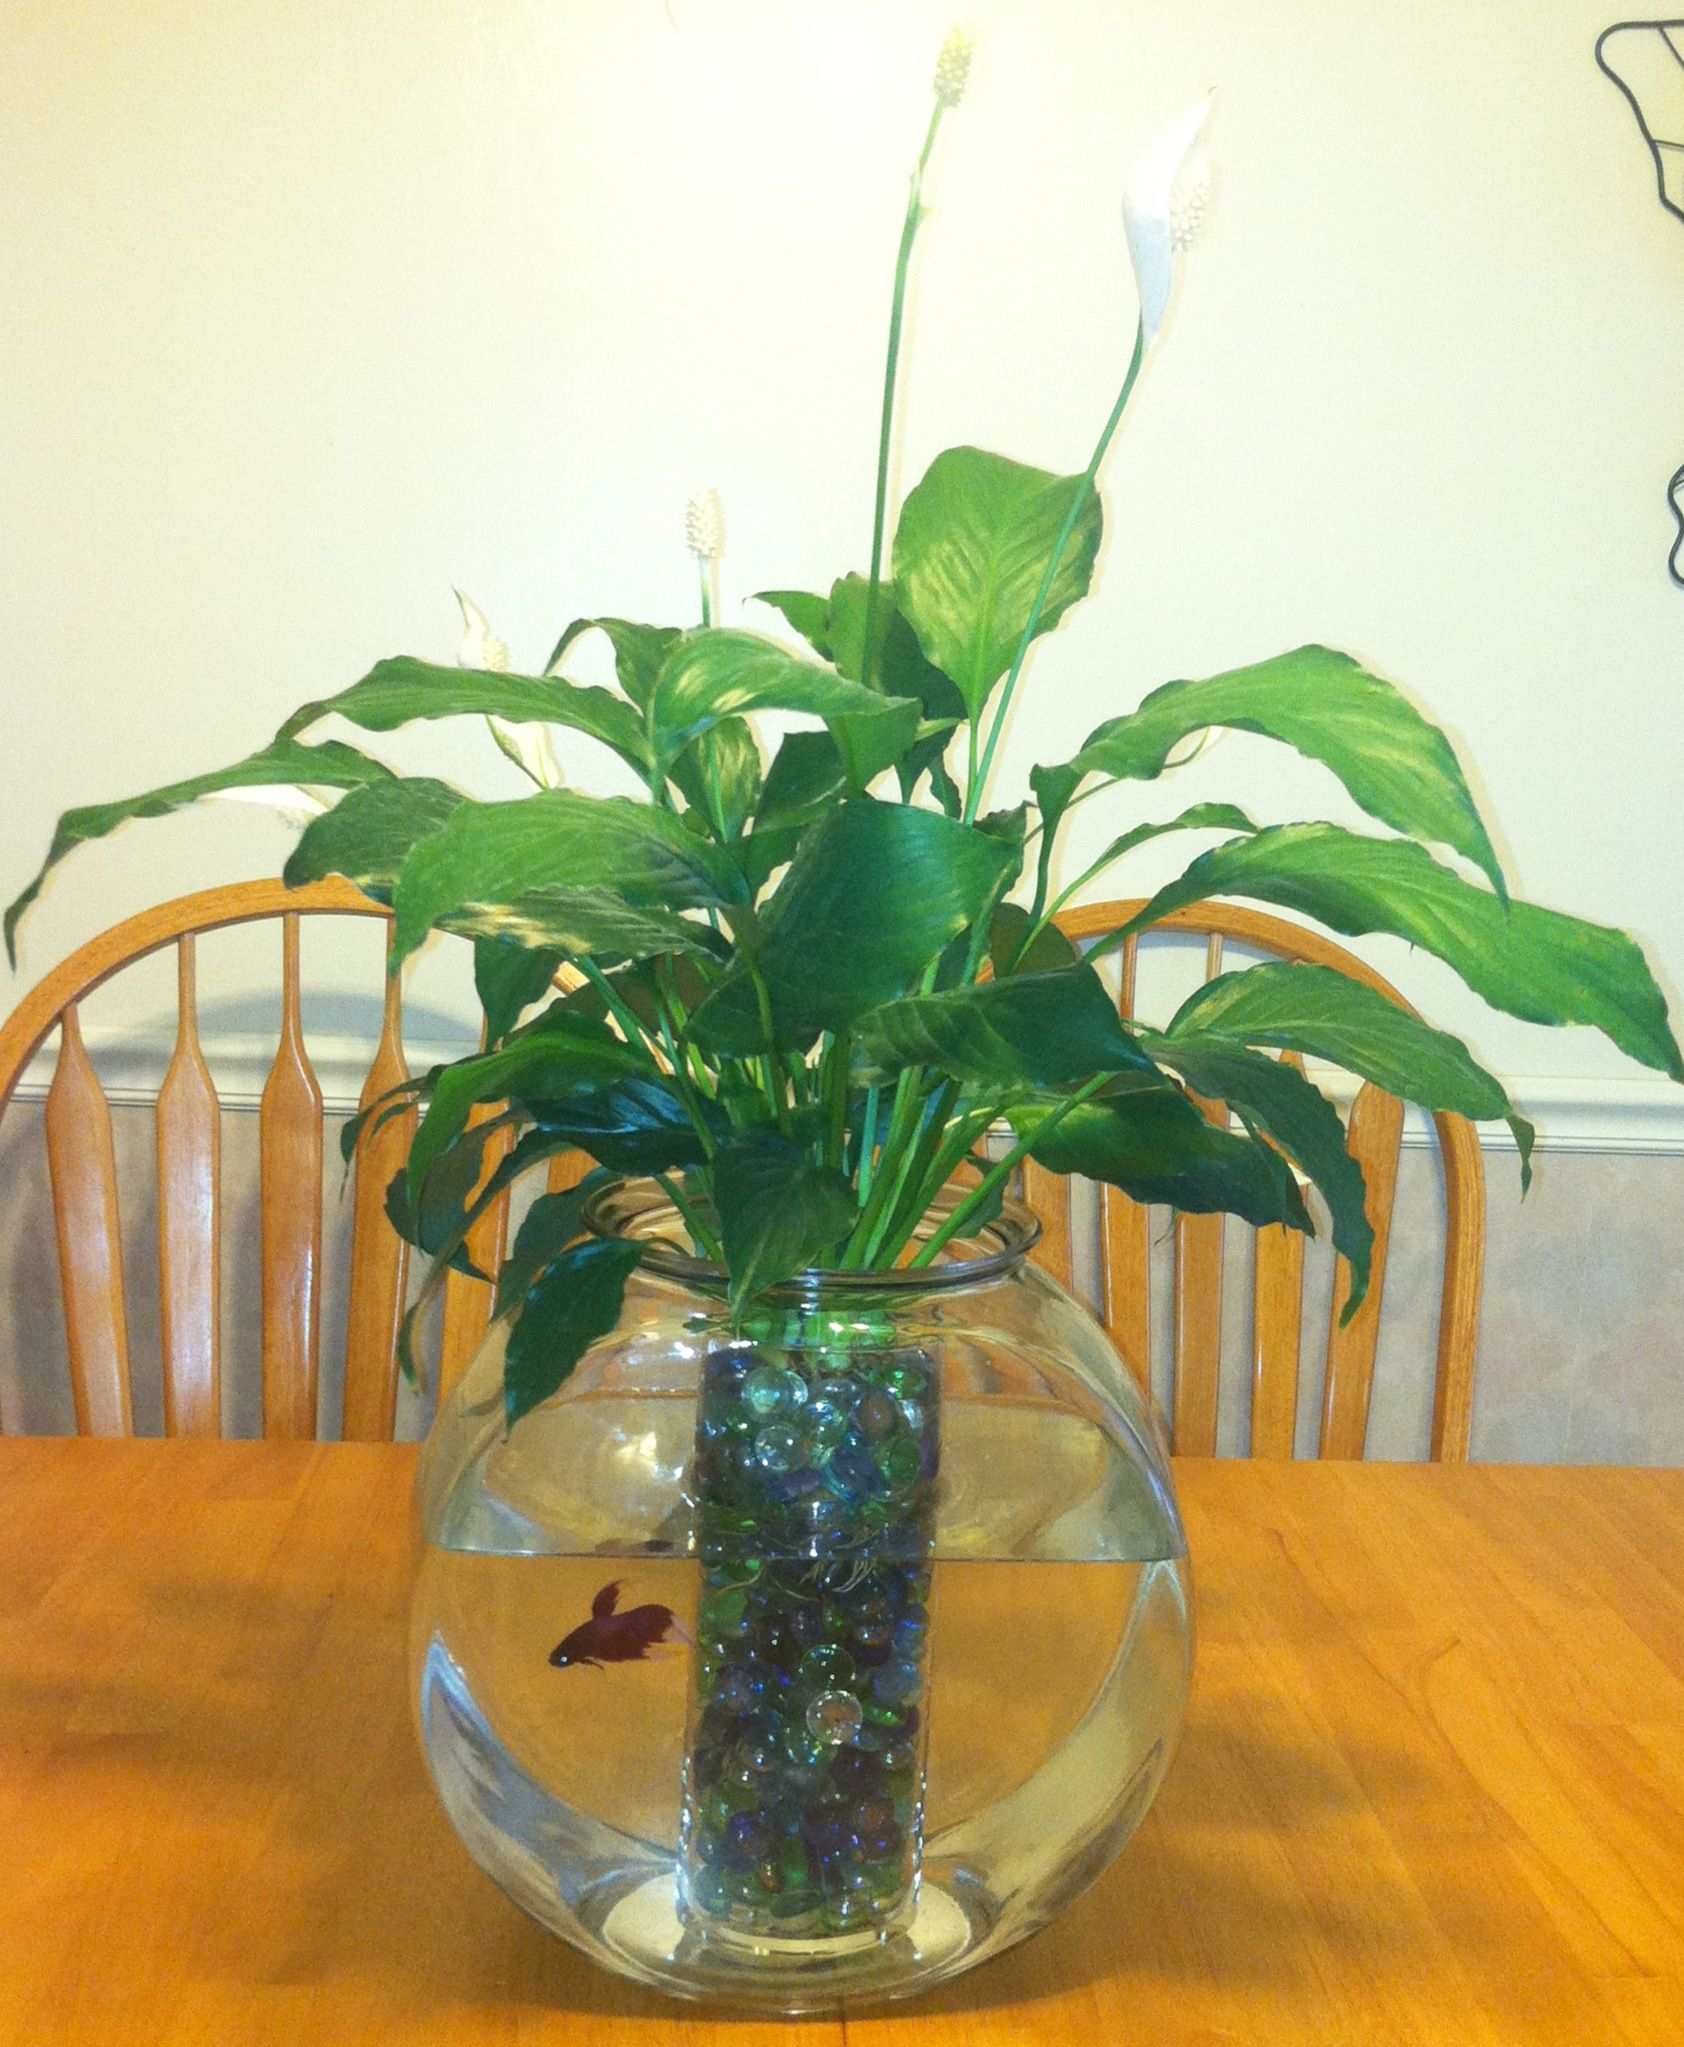 Flower vase with fish - Peace Lily Plant Betta Fish My Mom Makes These All The Time But